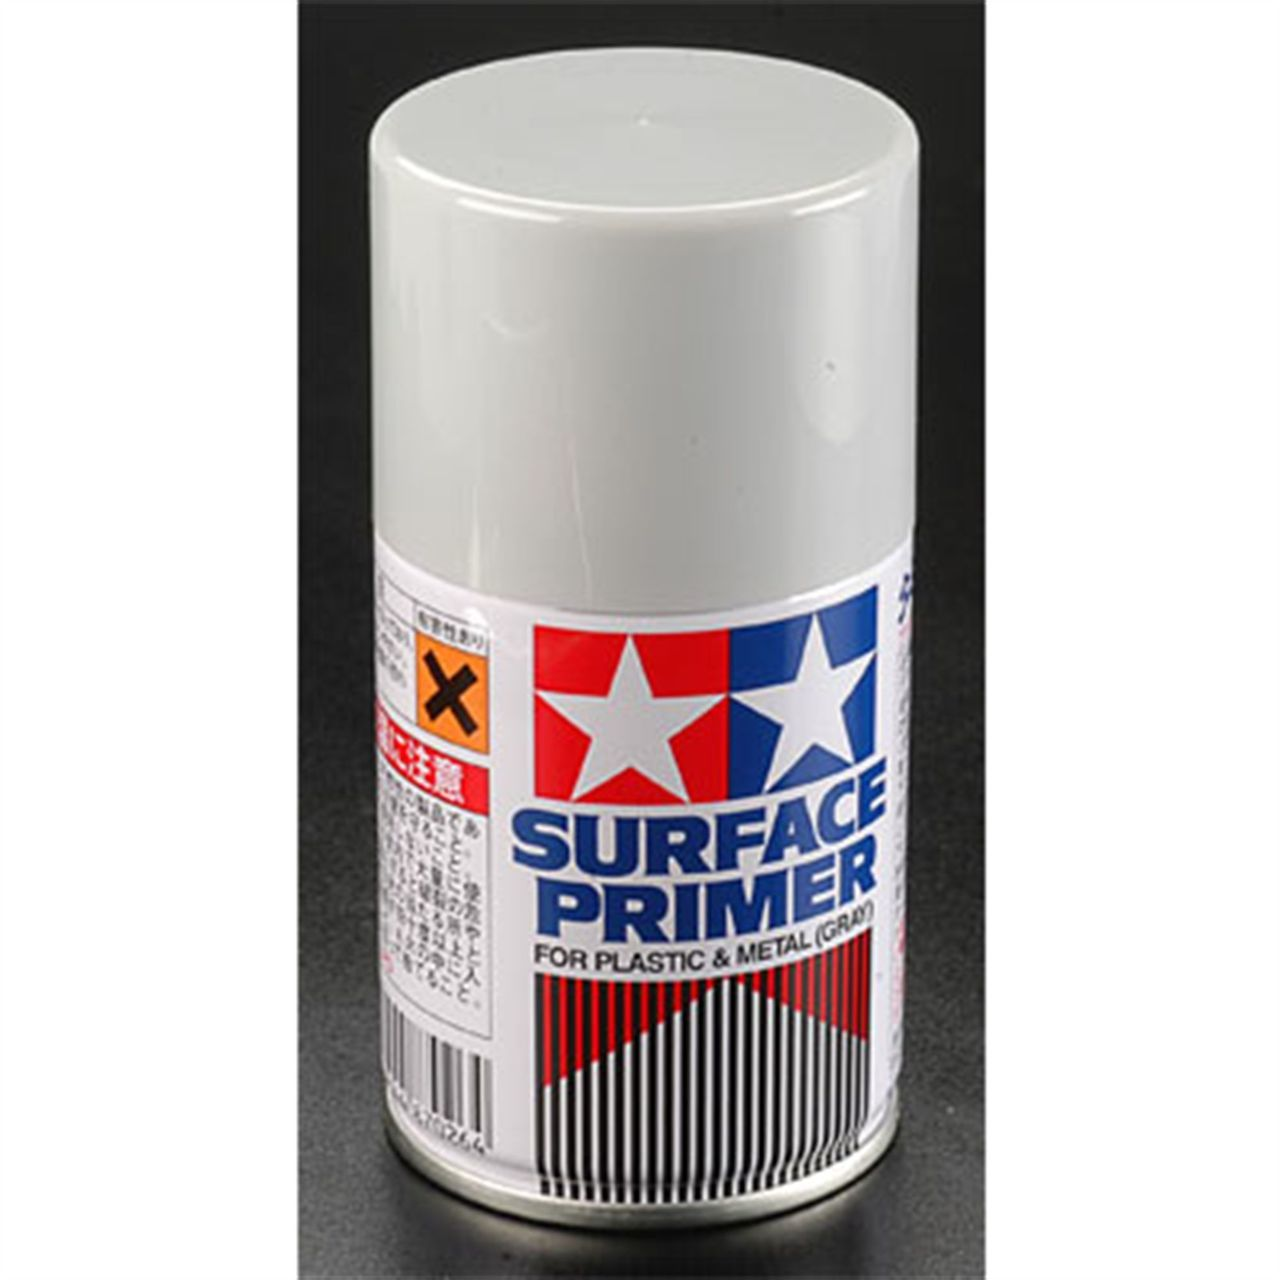 Tamiya Surface Primer For Plastic & Metal